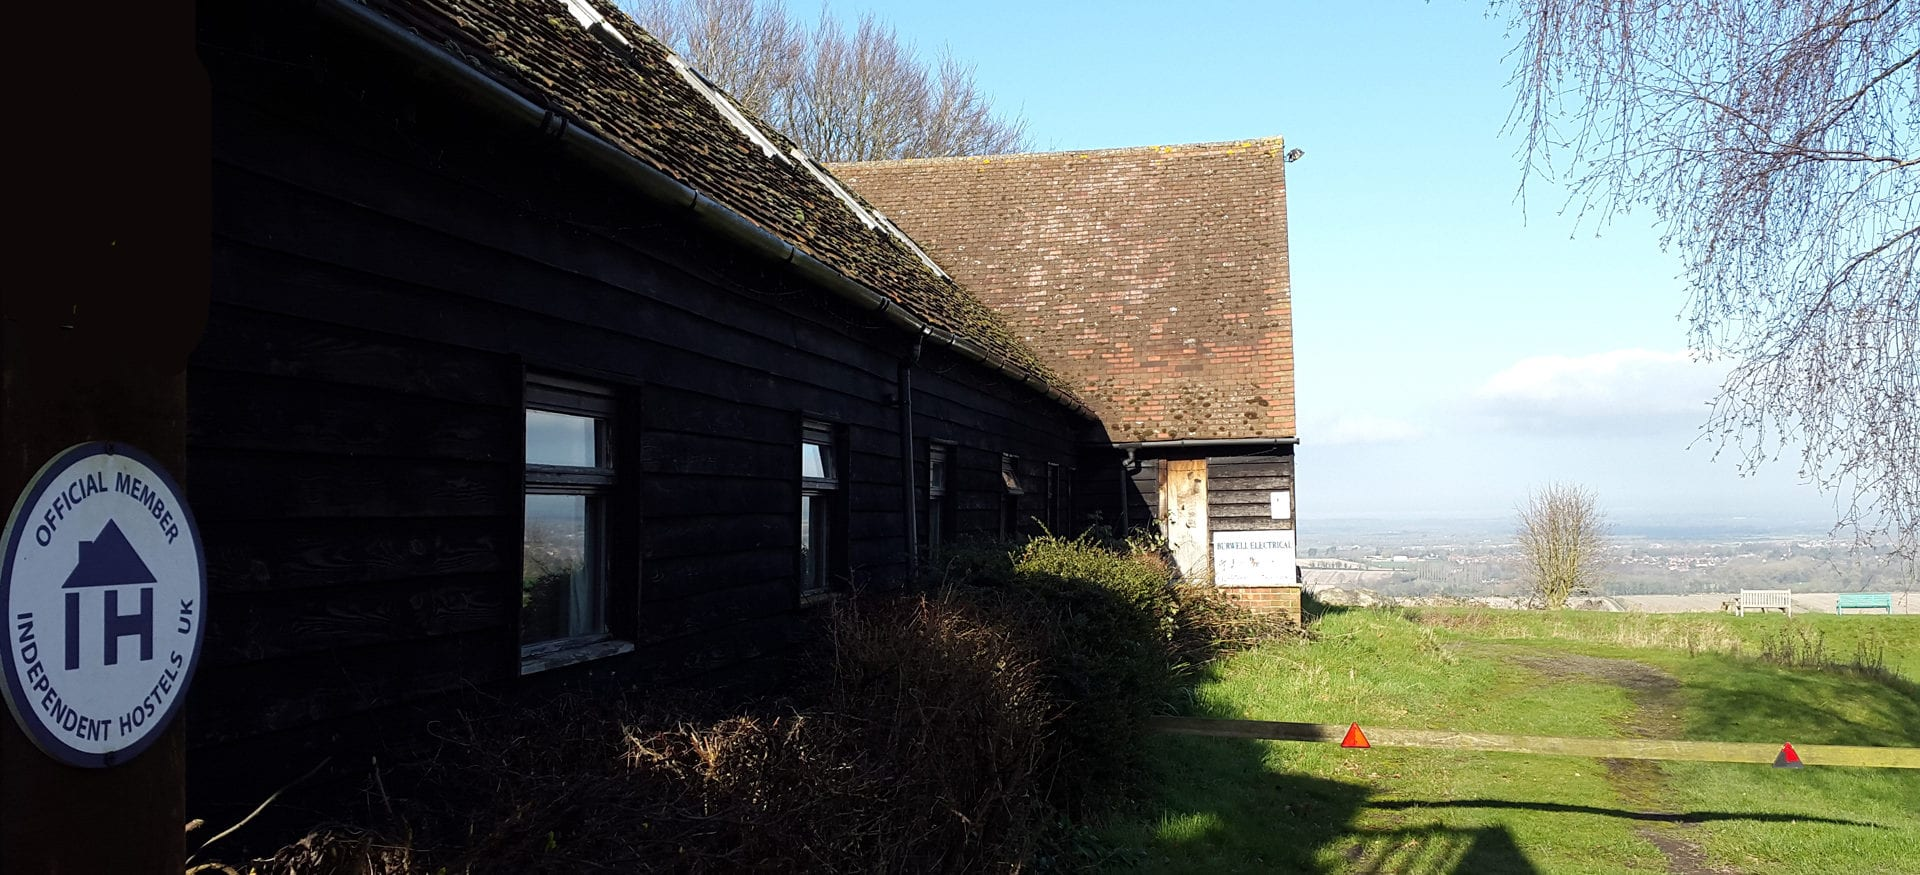 Courthill Centre on the Ridgeway Eco School accommodation